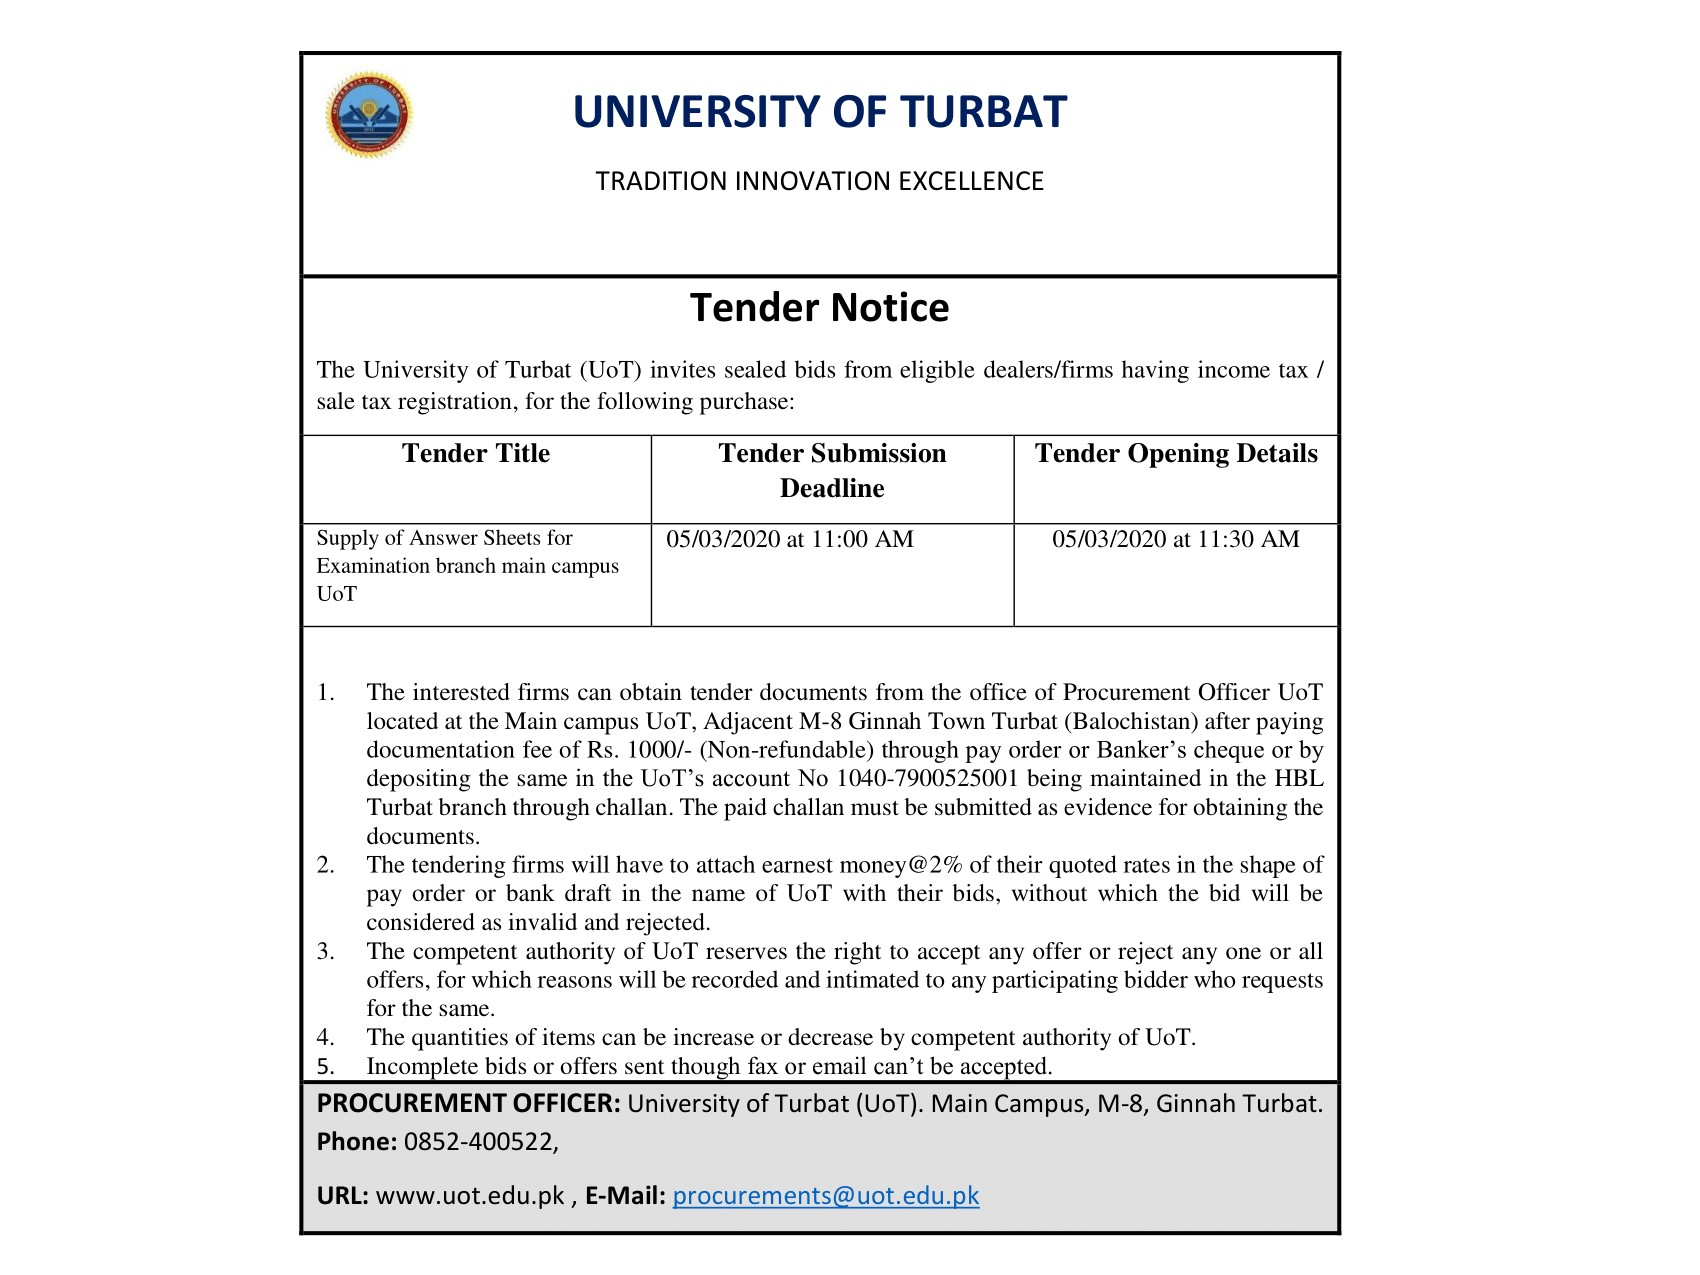 Tender Notice (Supply of Answer Sheets for Examination Branch main Campus)